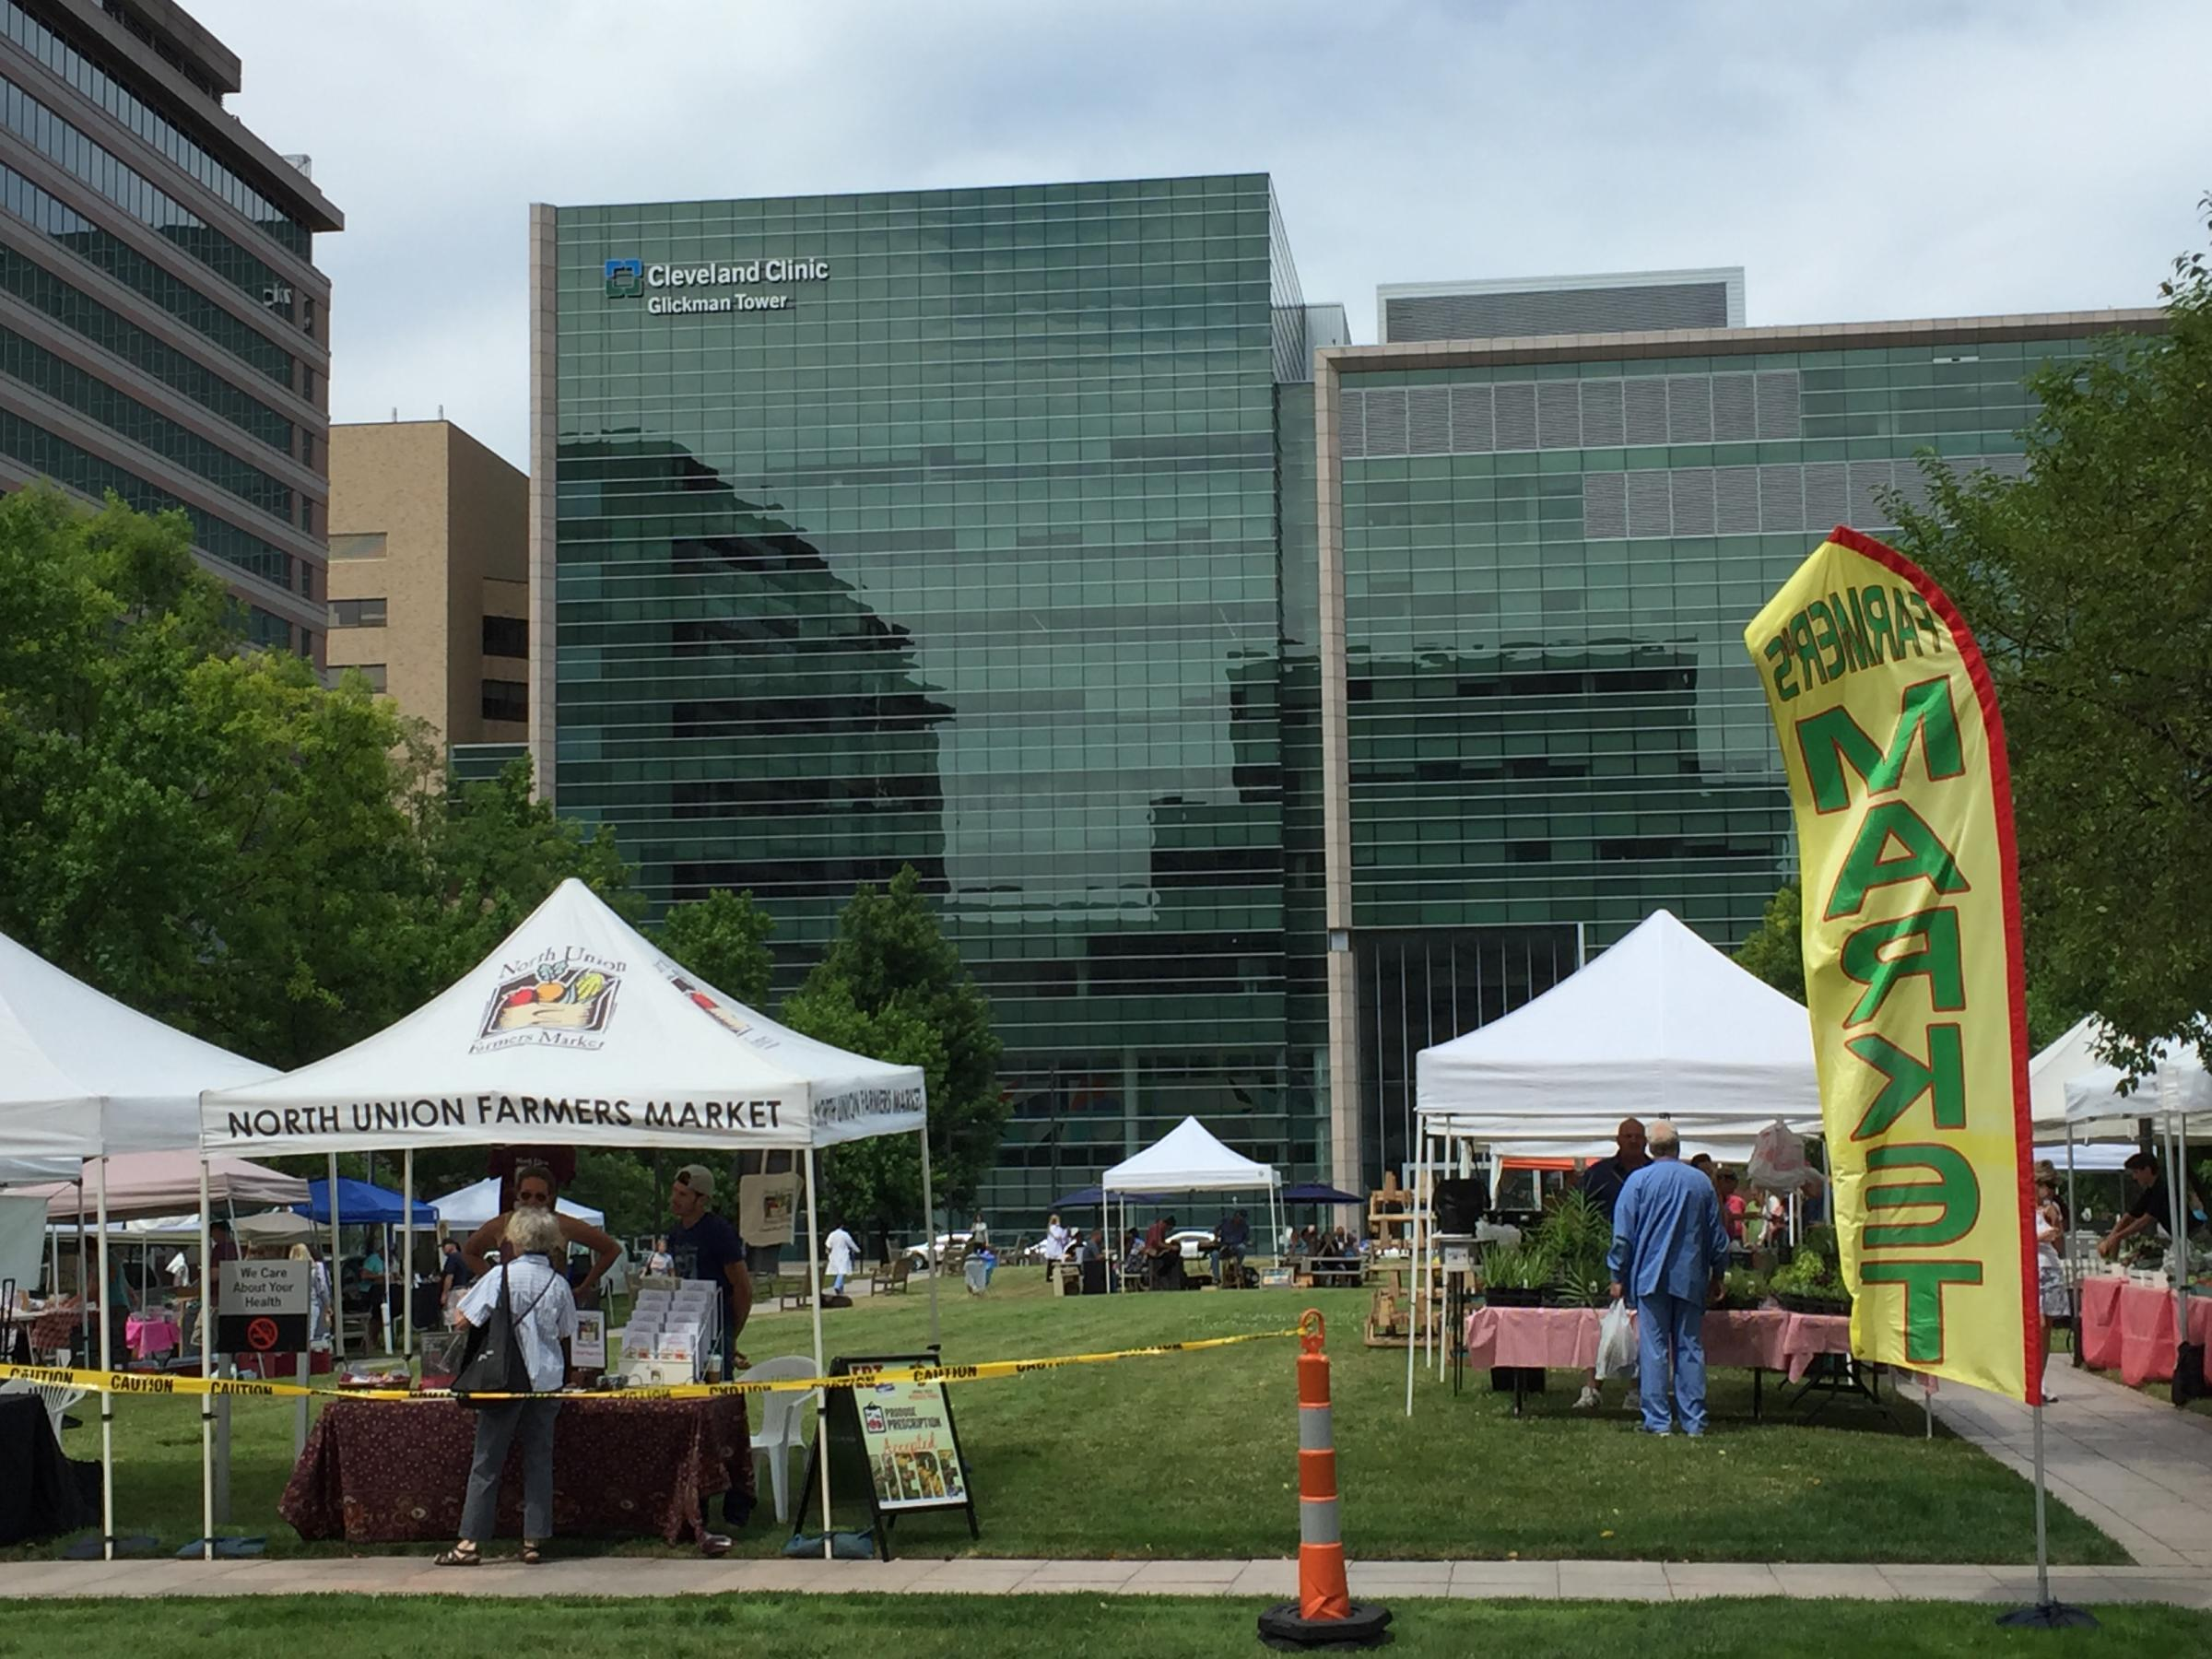 Fruits, Veggies and Healthy Advice at The Cleveland Clinic